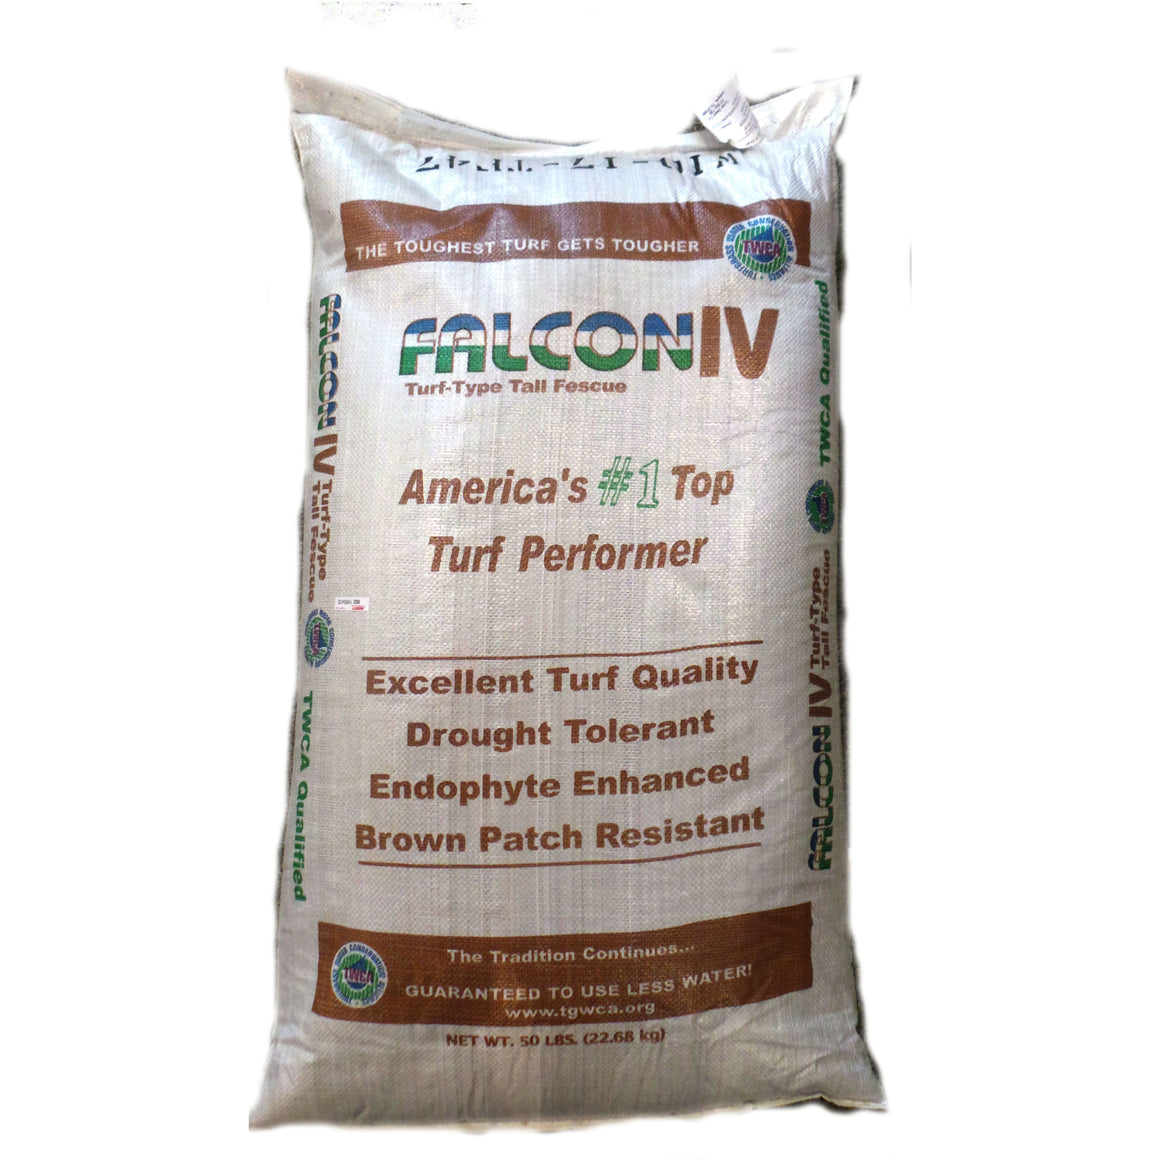 Falcon IV Tall Fescue Grass Seed - 1 lb. - Seed World